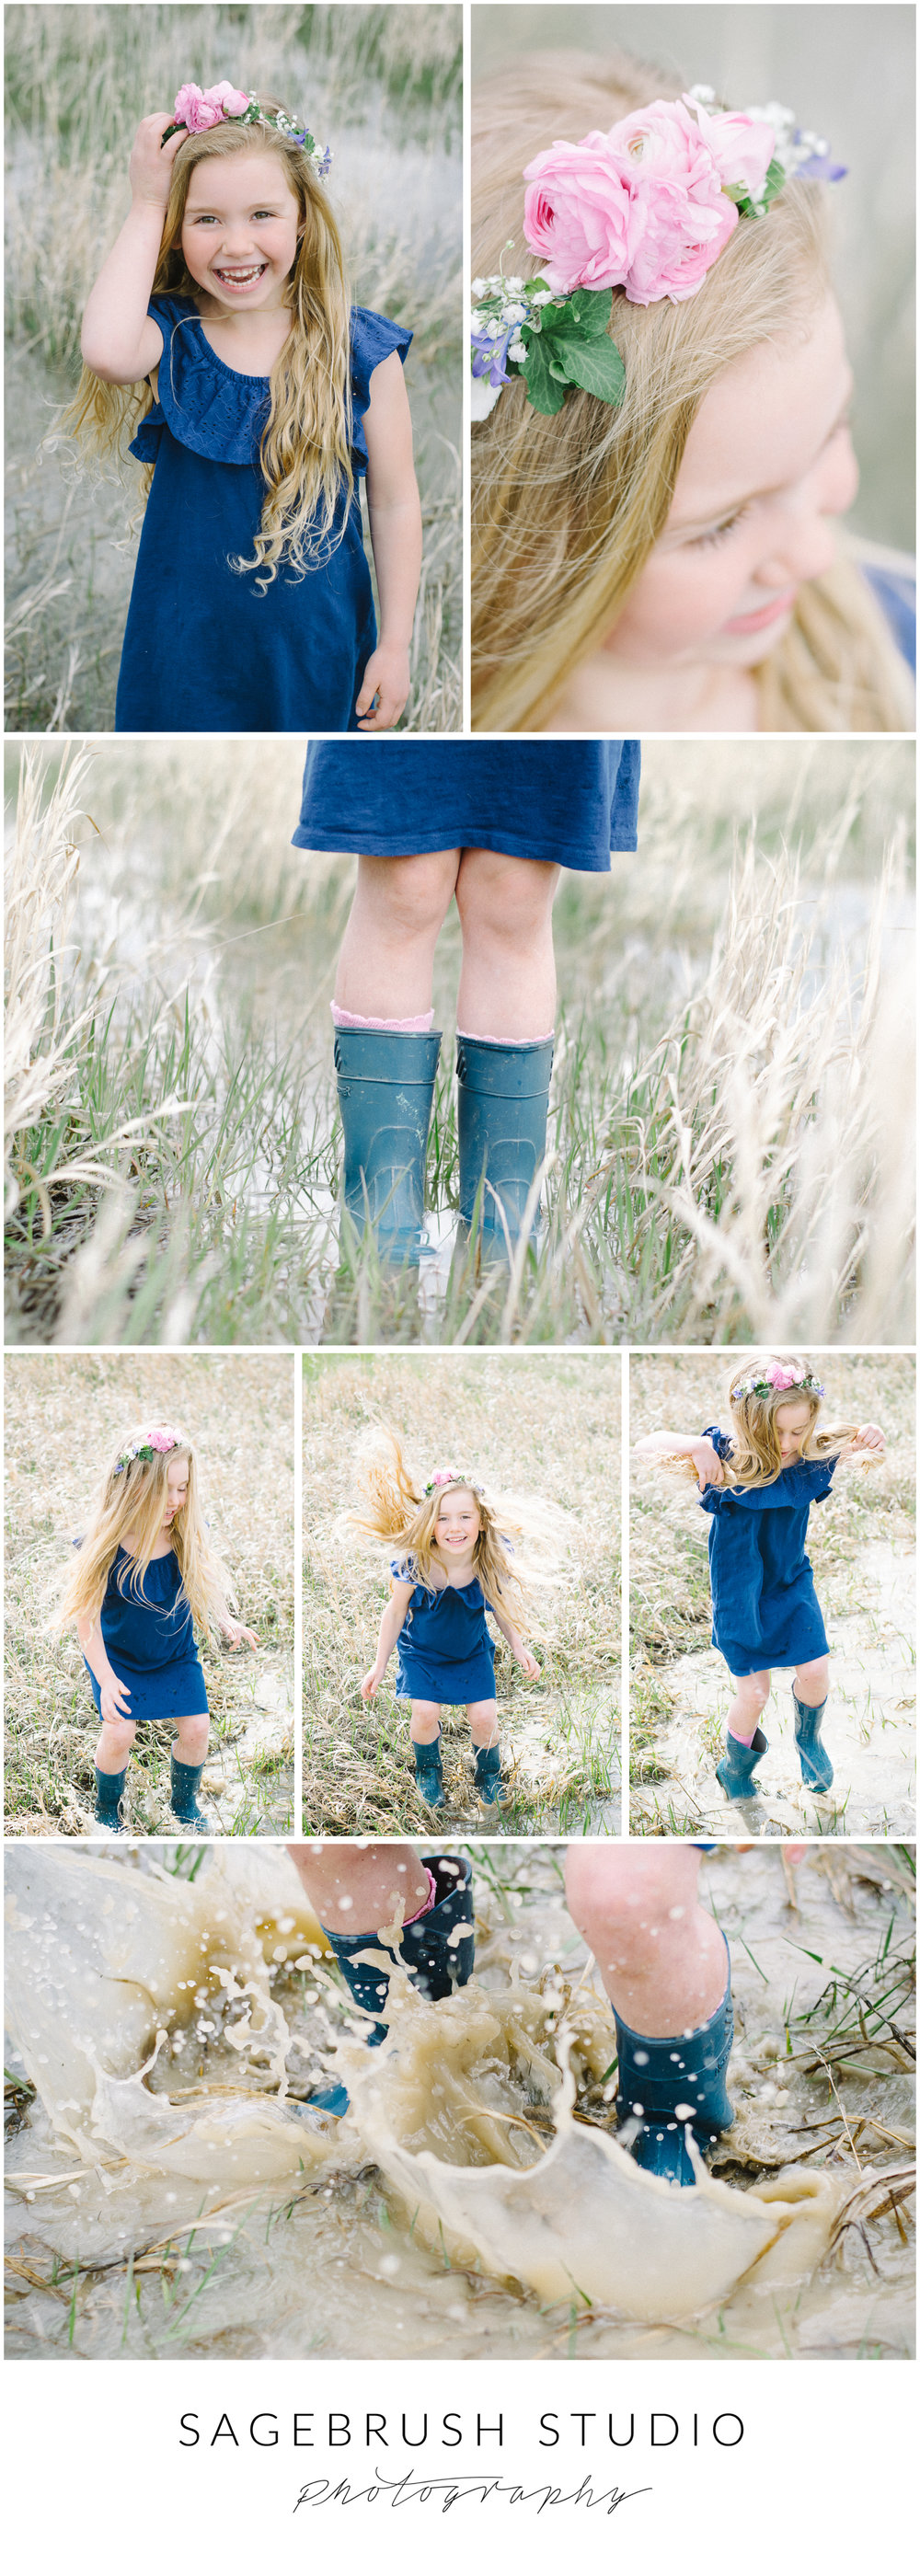 Puddle Princess Sagebrush Studio Photography. Shelby, Montana